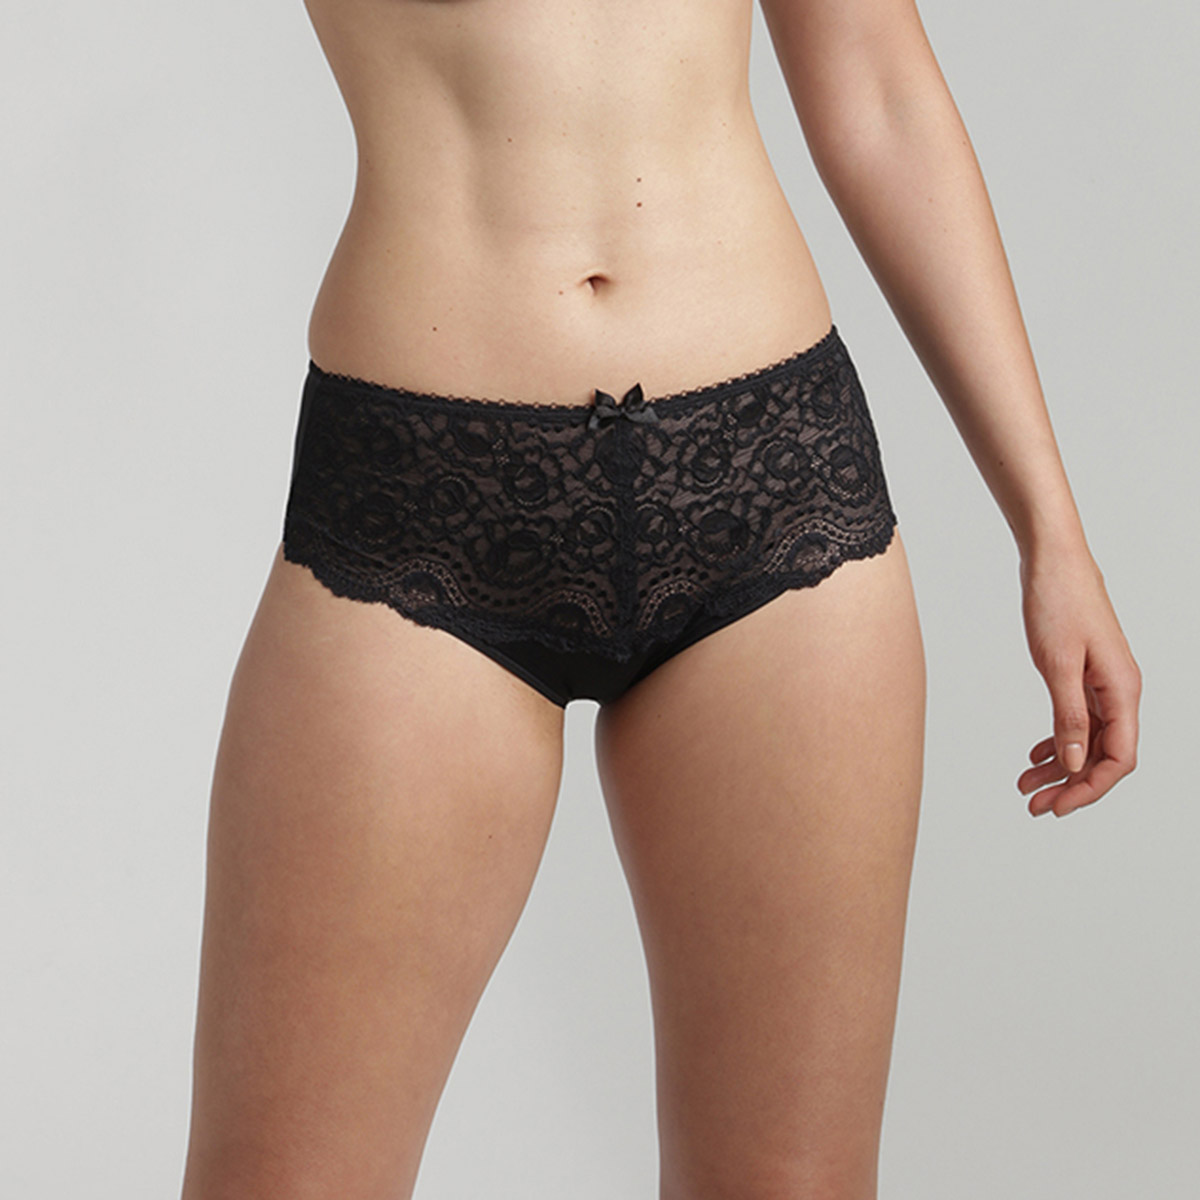 Midi knickers in Black – Flower Elegance, , PLAYTEX